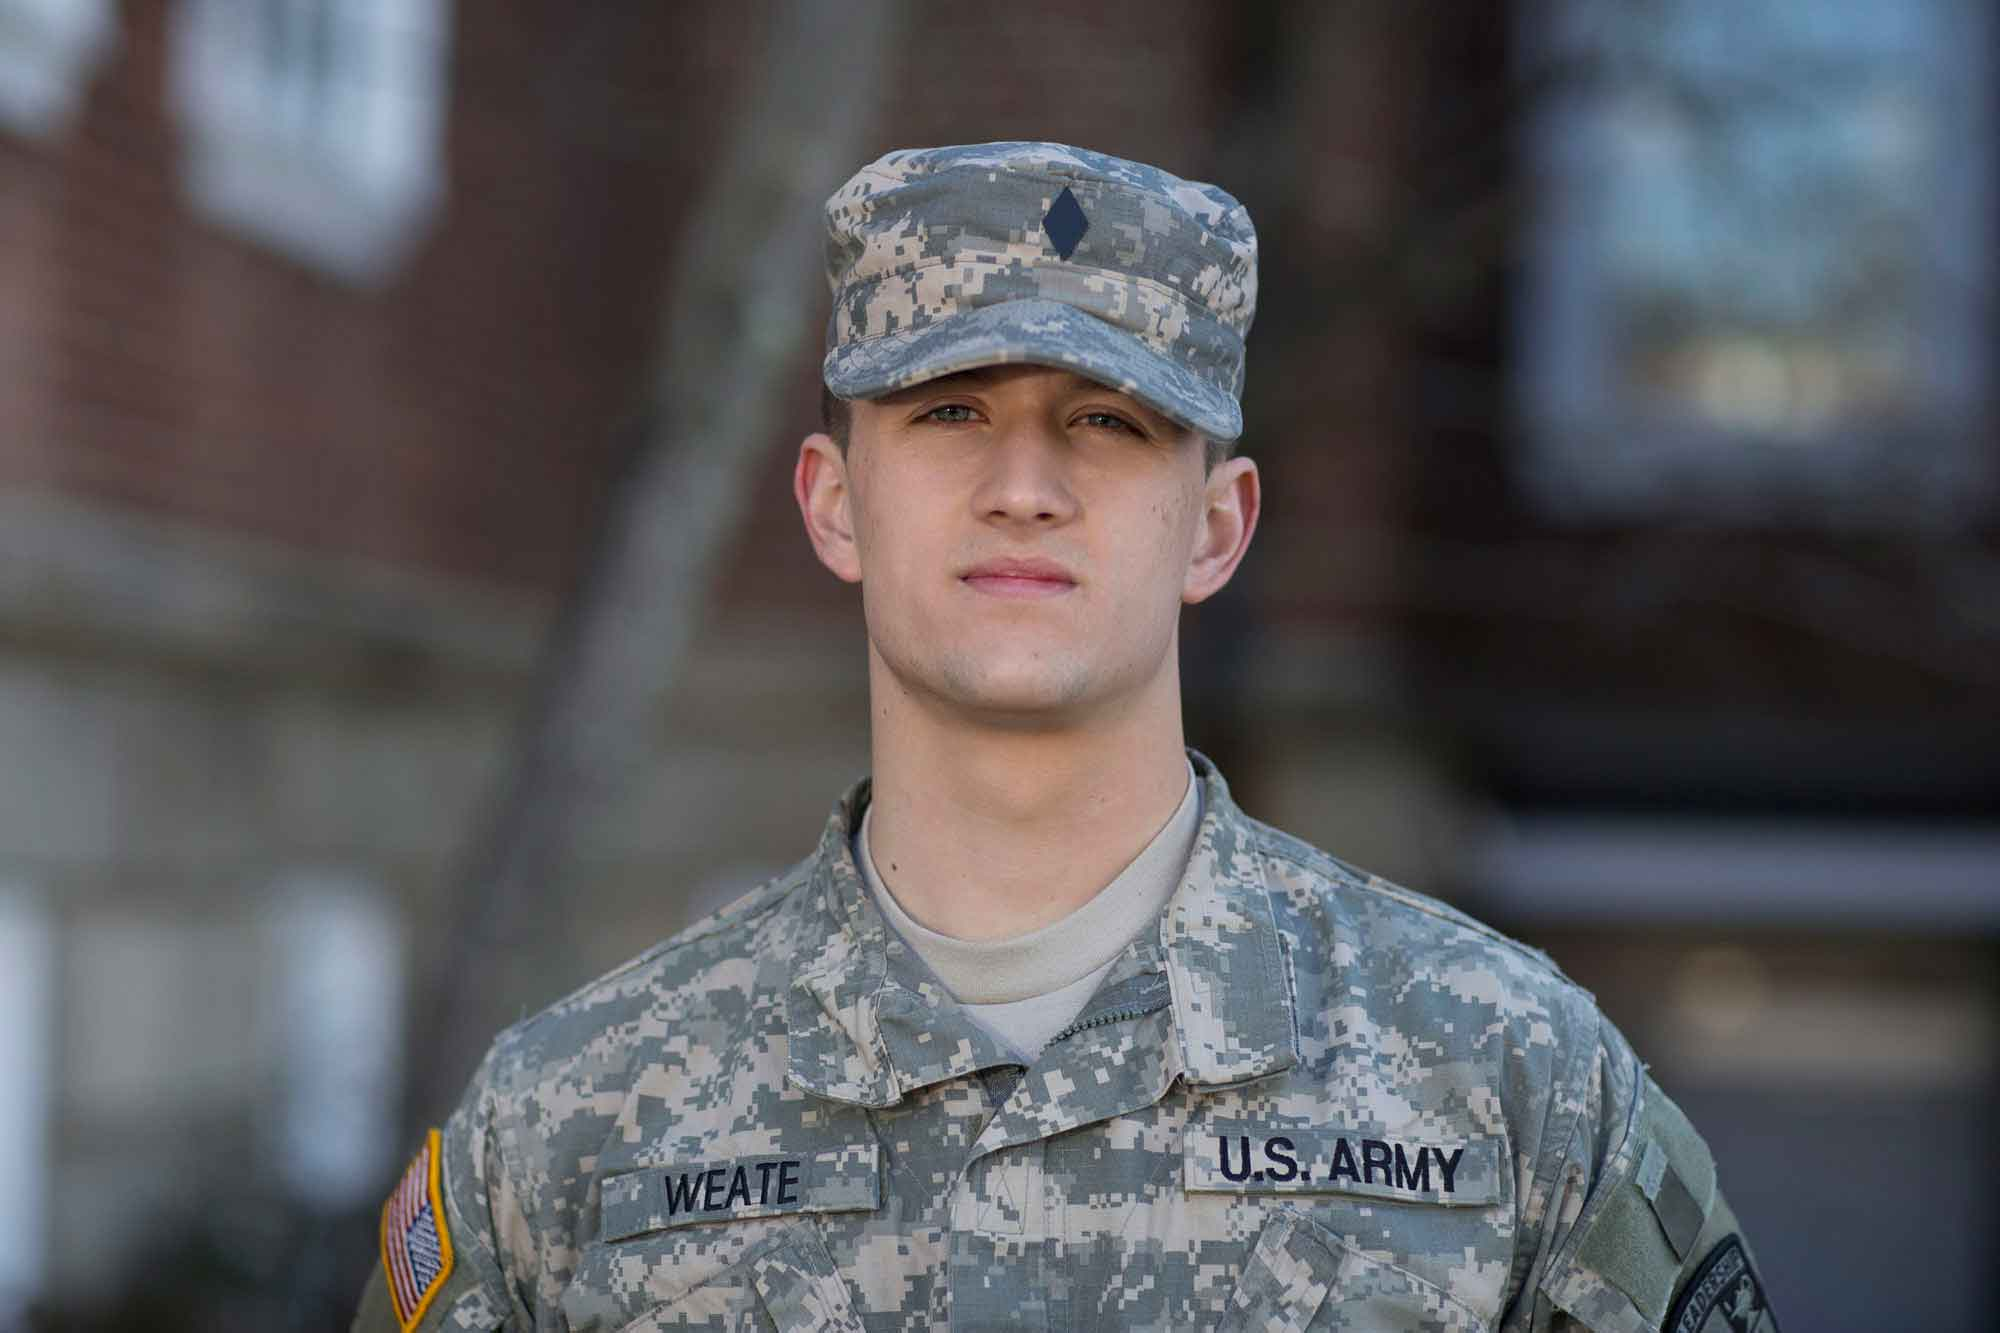 Army ROTC cadet and soon-to-be computer engineering graduate Joseph Weate will be fighting for his country on a new battlefield: cyberspace.